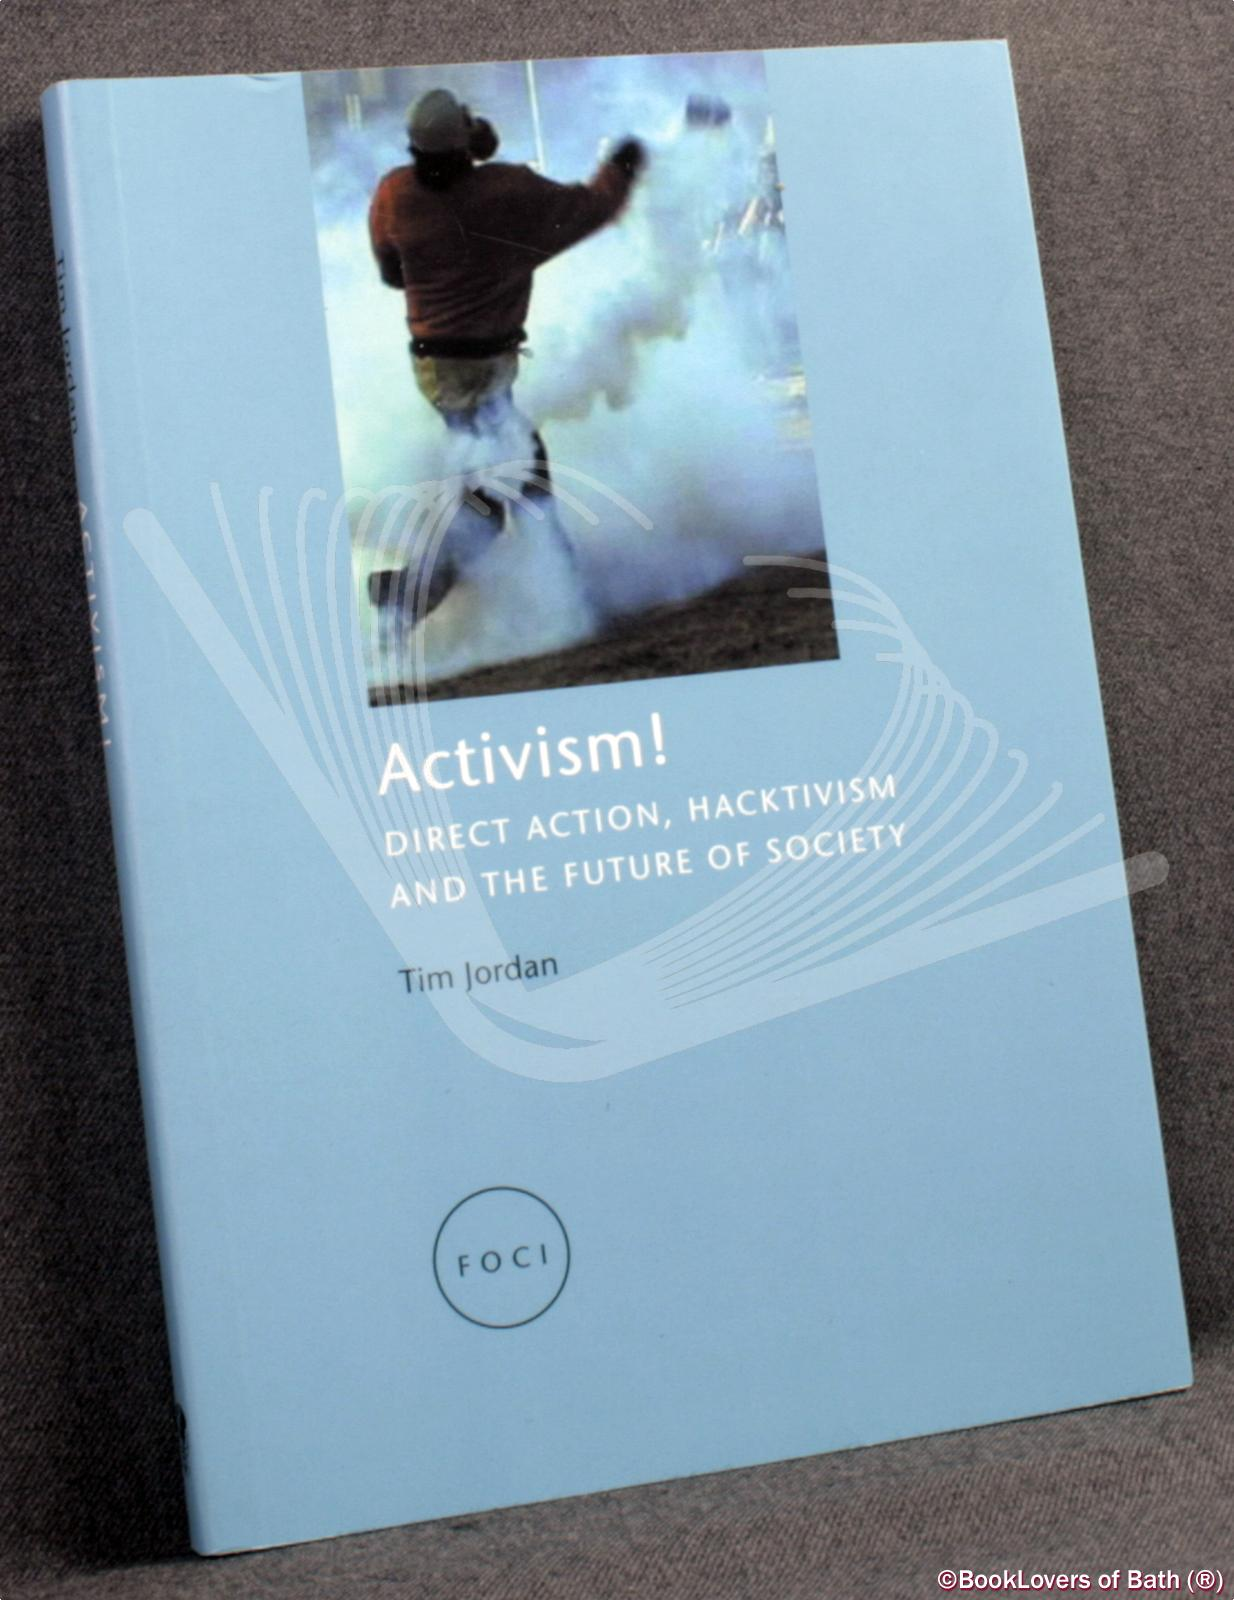 Activism!: Direct Action, Hacktivism and the Future of Society - Tim Jordan